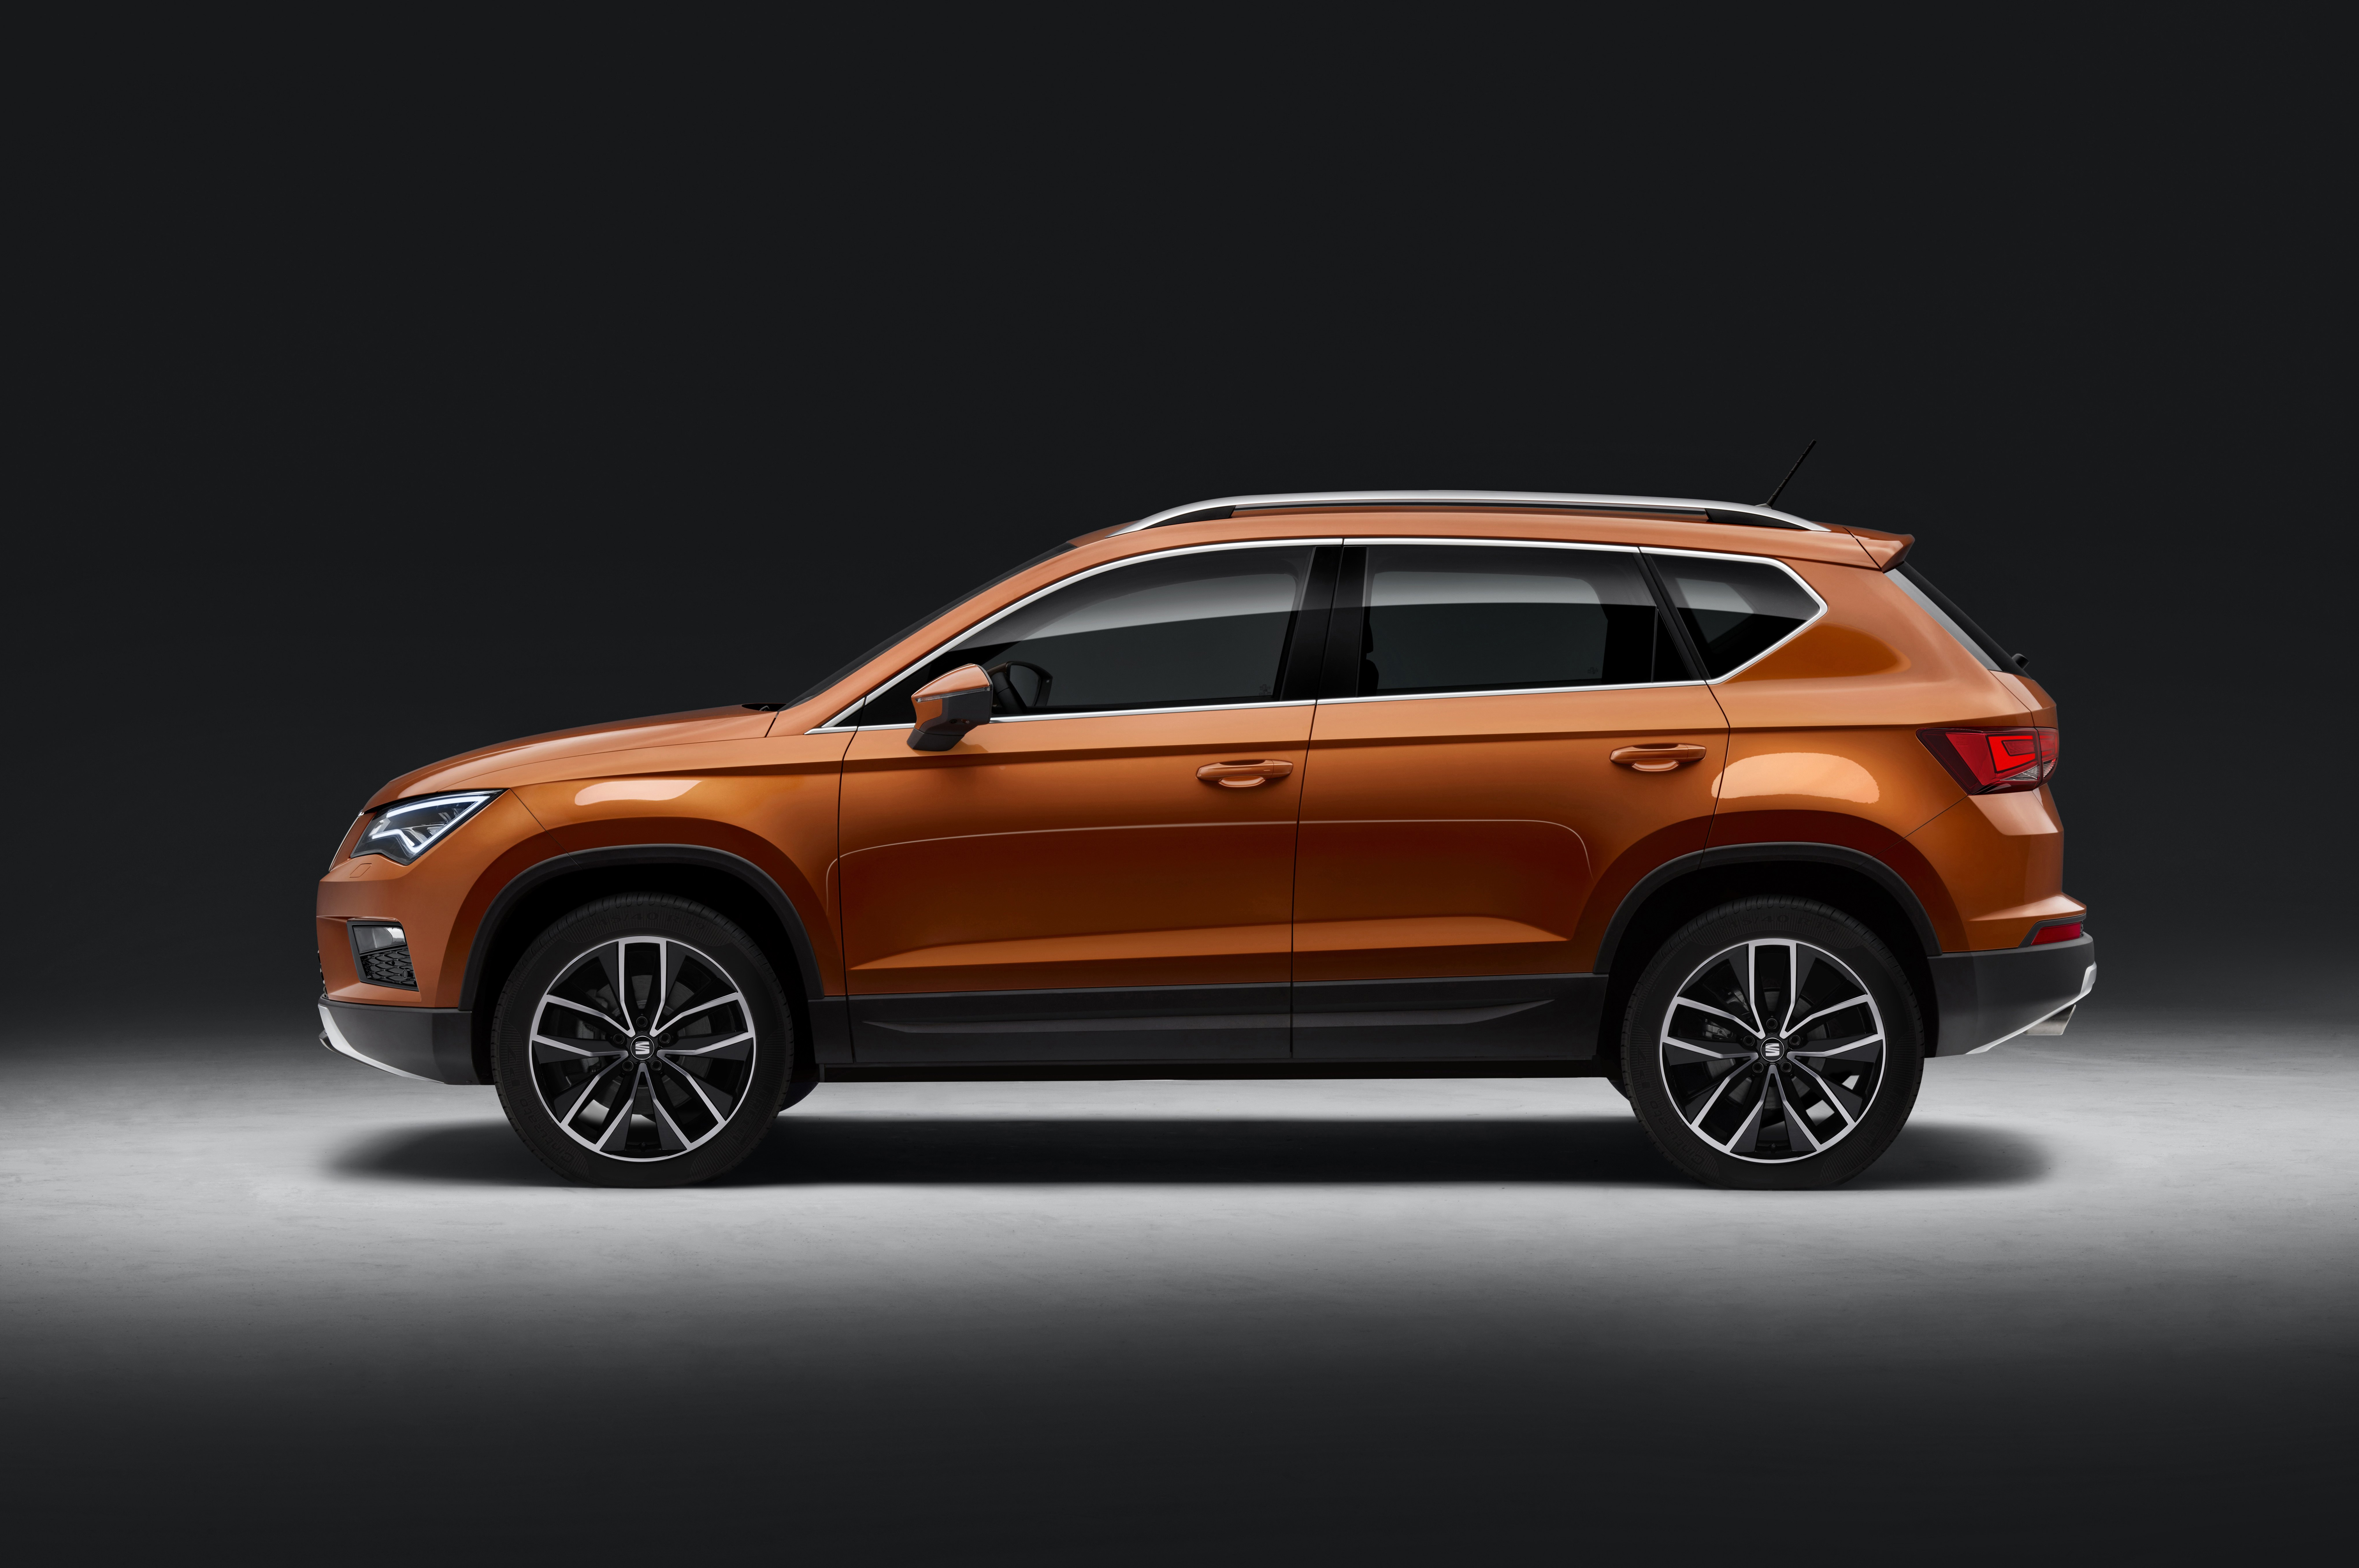 Suv >> SEAT Ateca unveiled – brand's first-ever SUV model Paul Tan - Image 439641